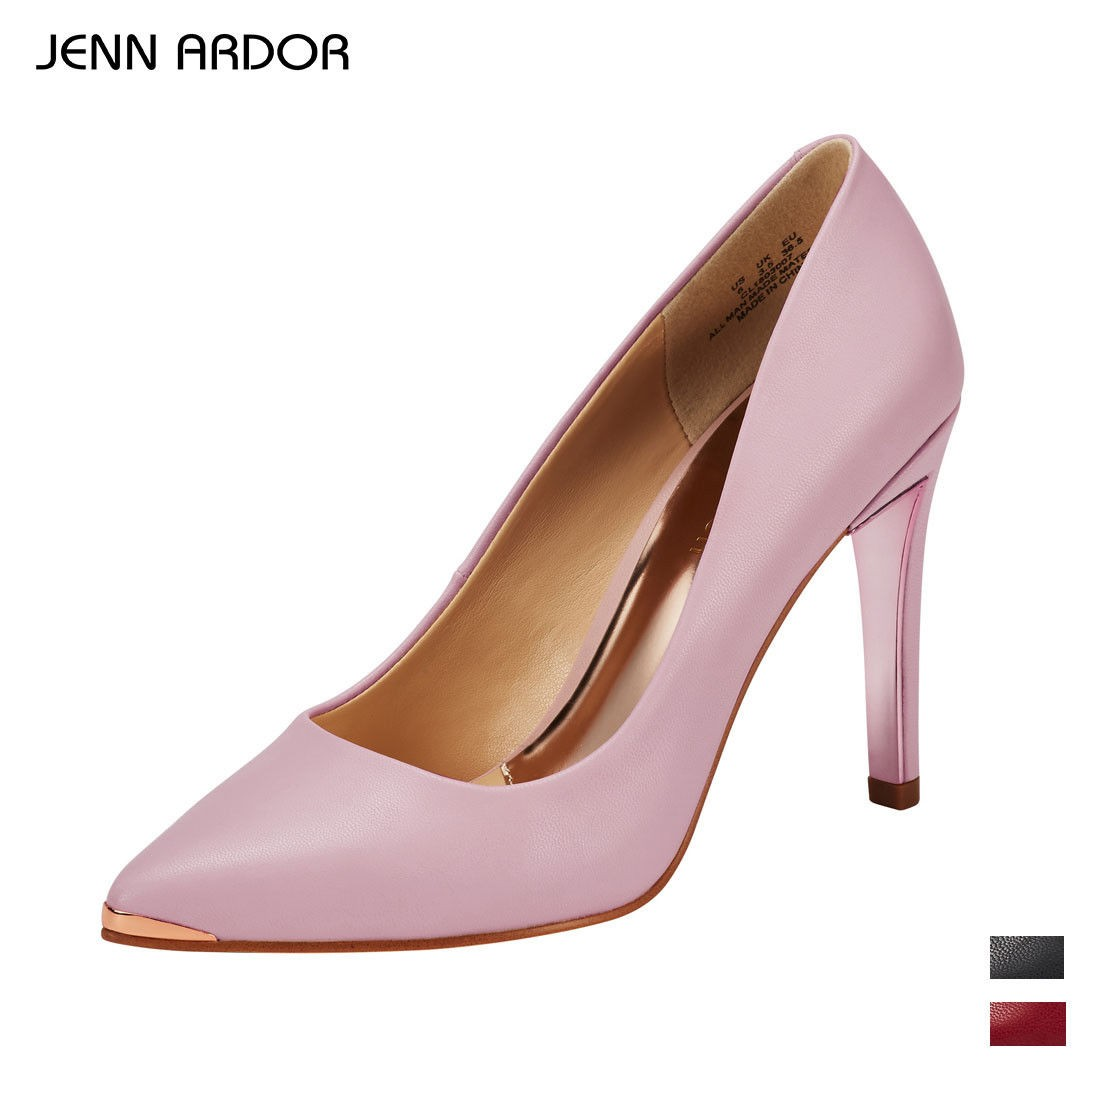 15a2c1e5df92 JENN ARDOR Women s Classic Stilettos High Heels Pointed Toe Party Wedding  Pumps